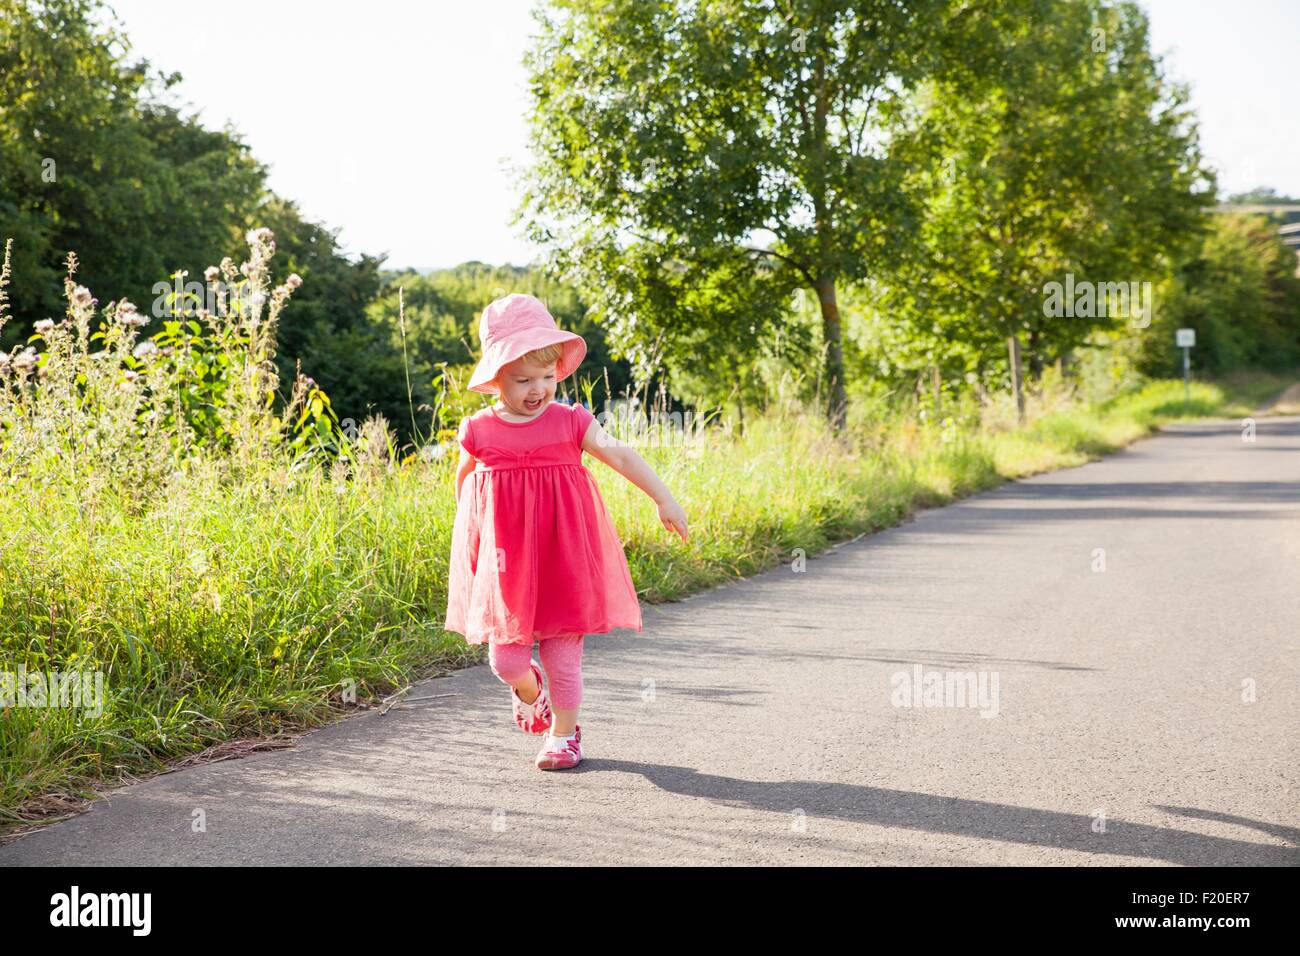 Female toddler watching her shadow toddling along rural road - Stock Image